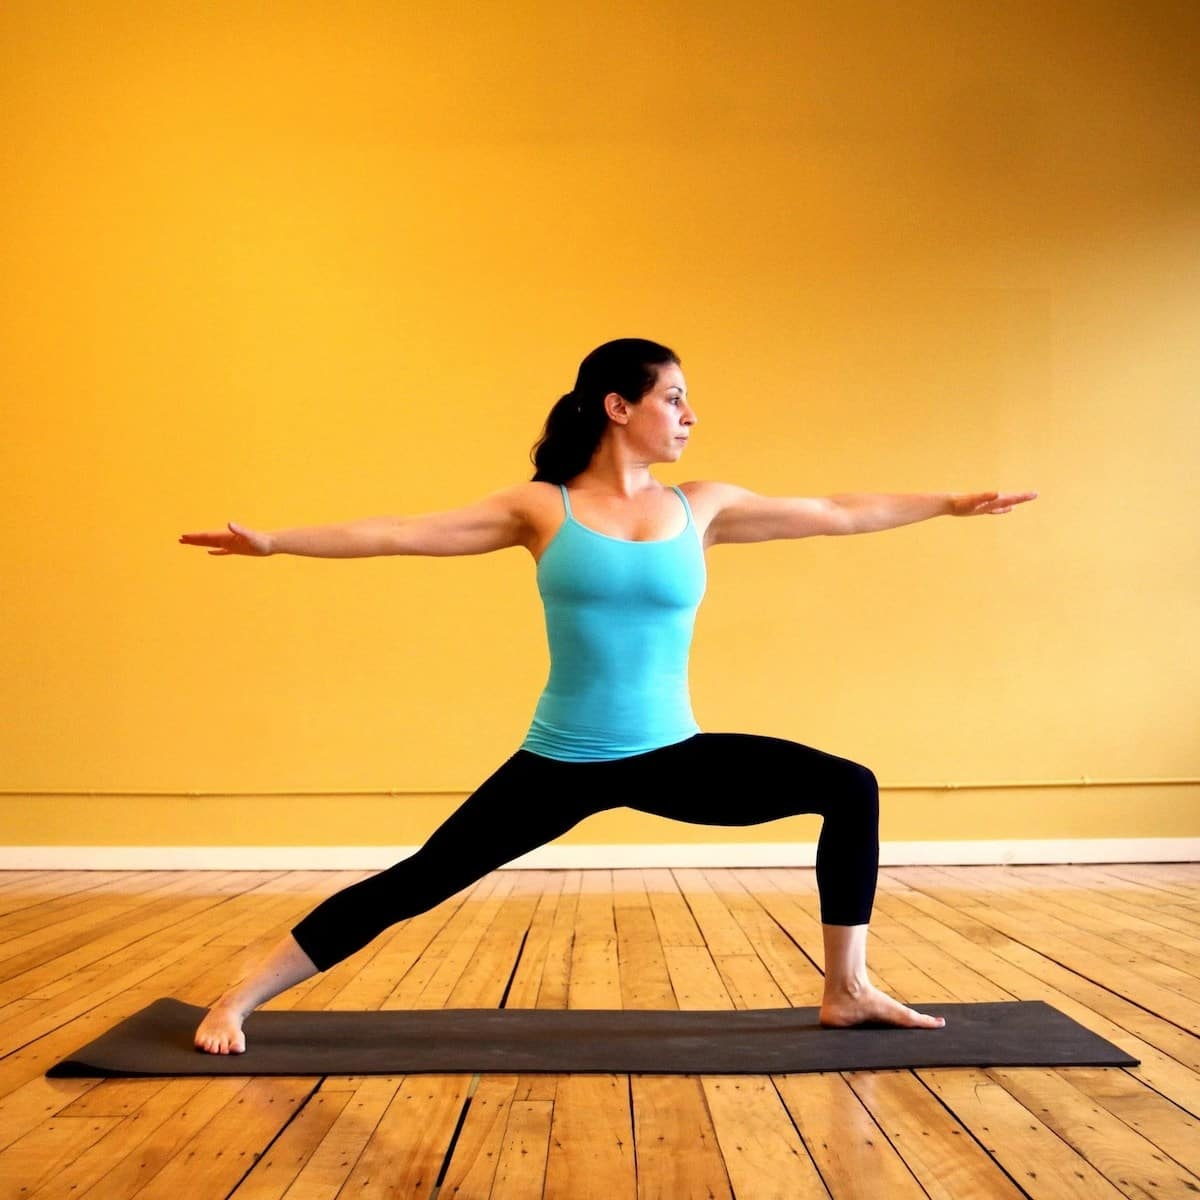 yoga exercises for back pain yoga exercises benefits yoga in ghana yoga exercises for good posture